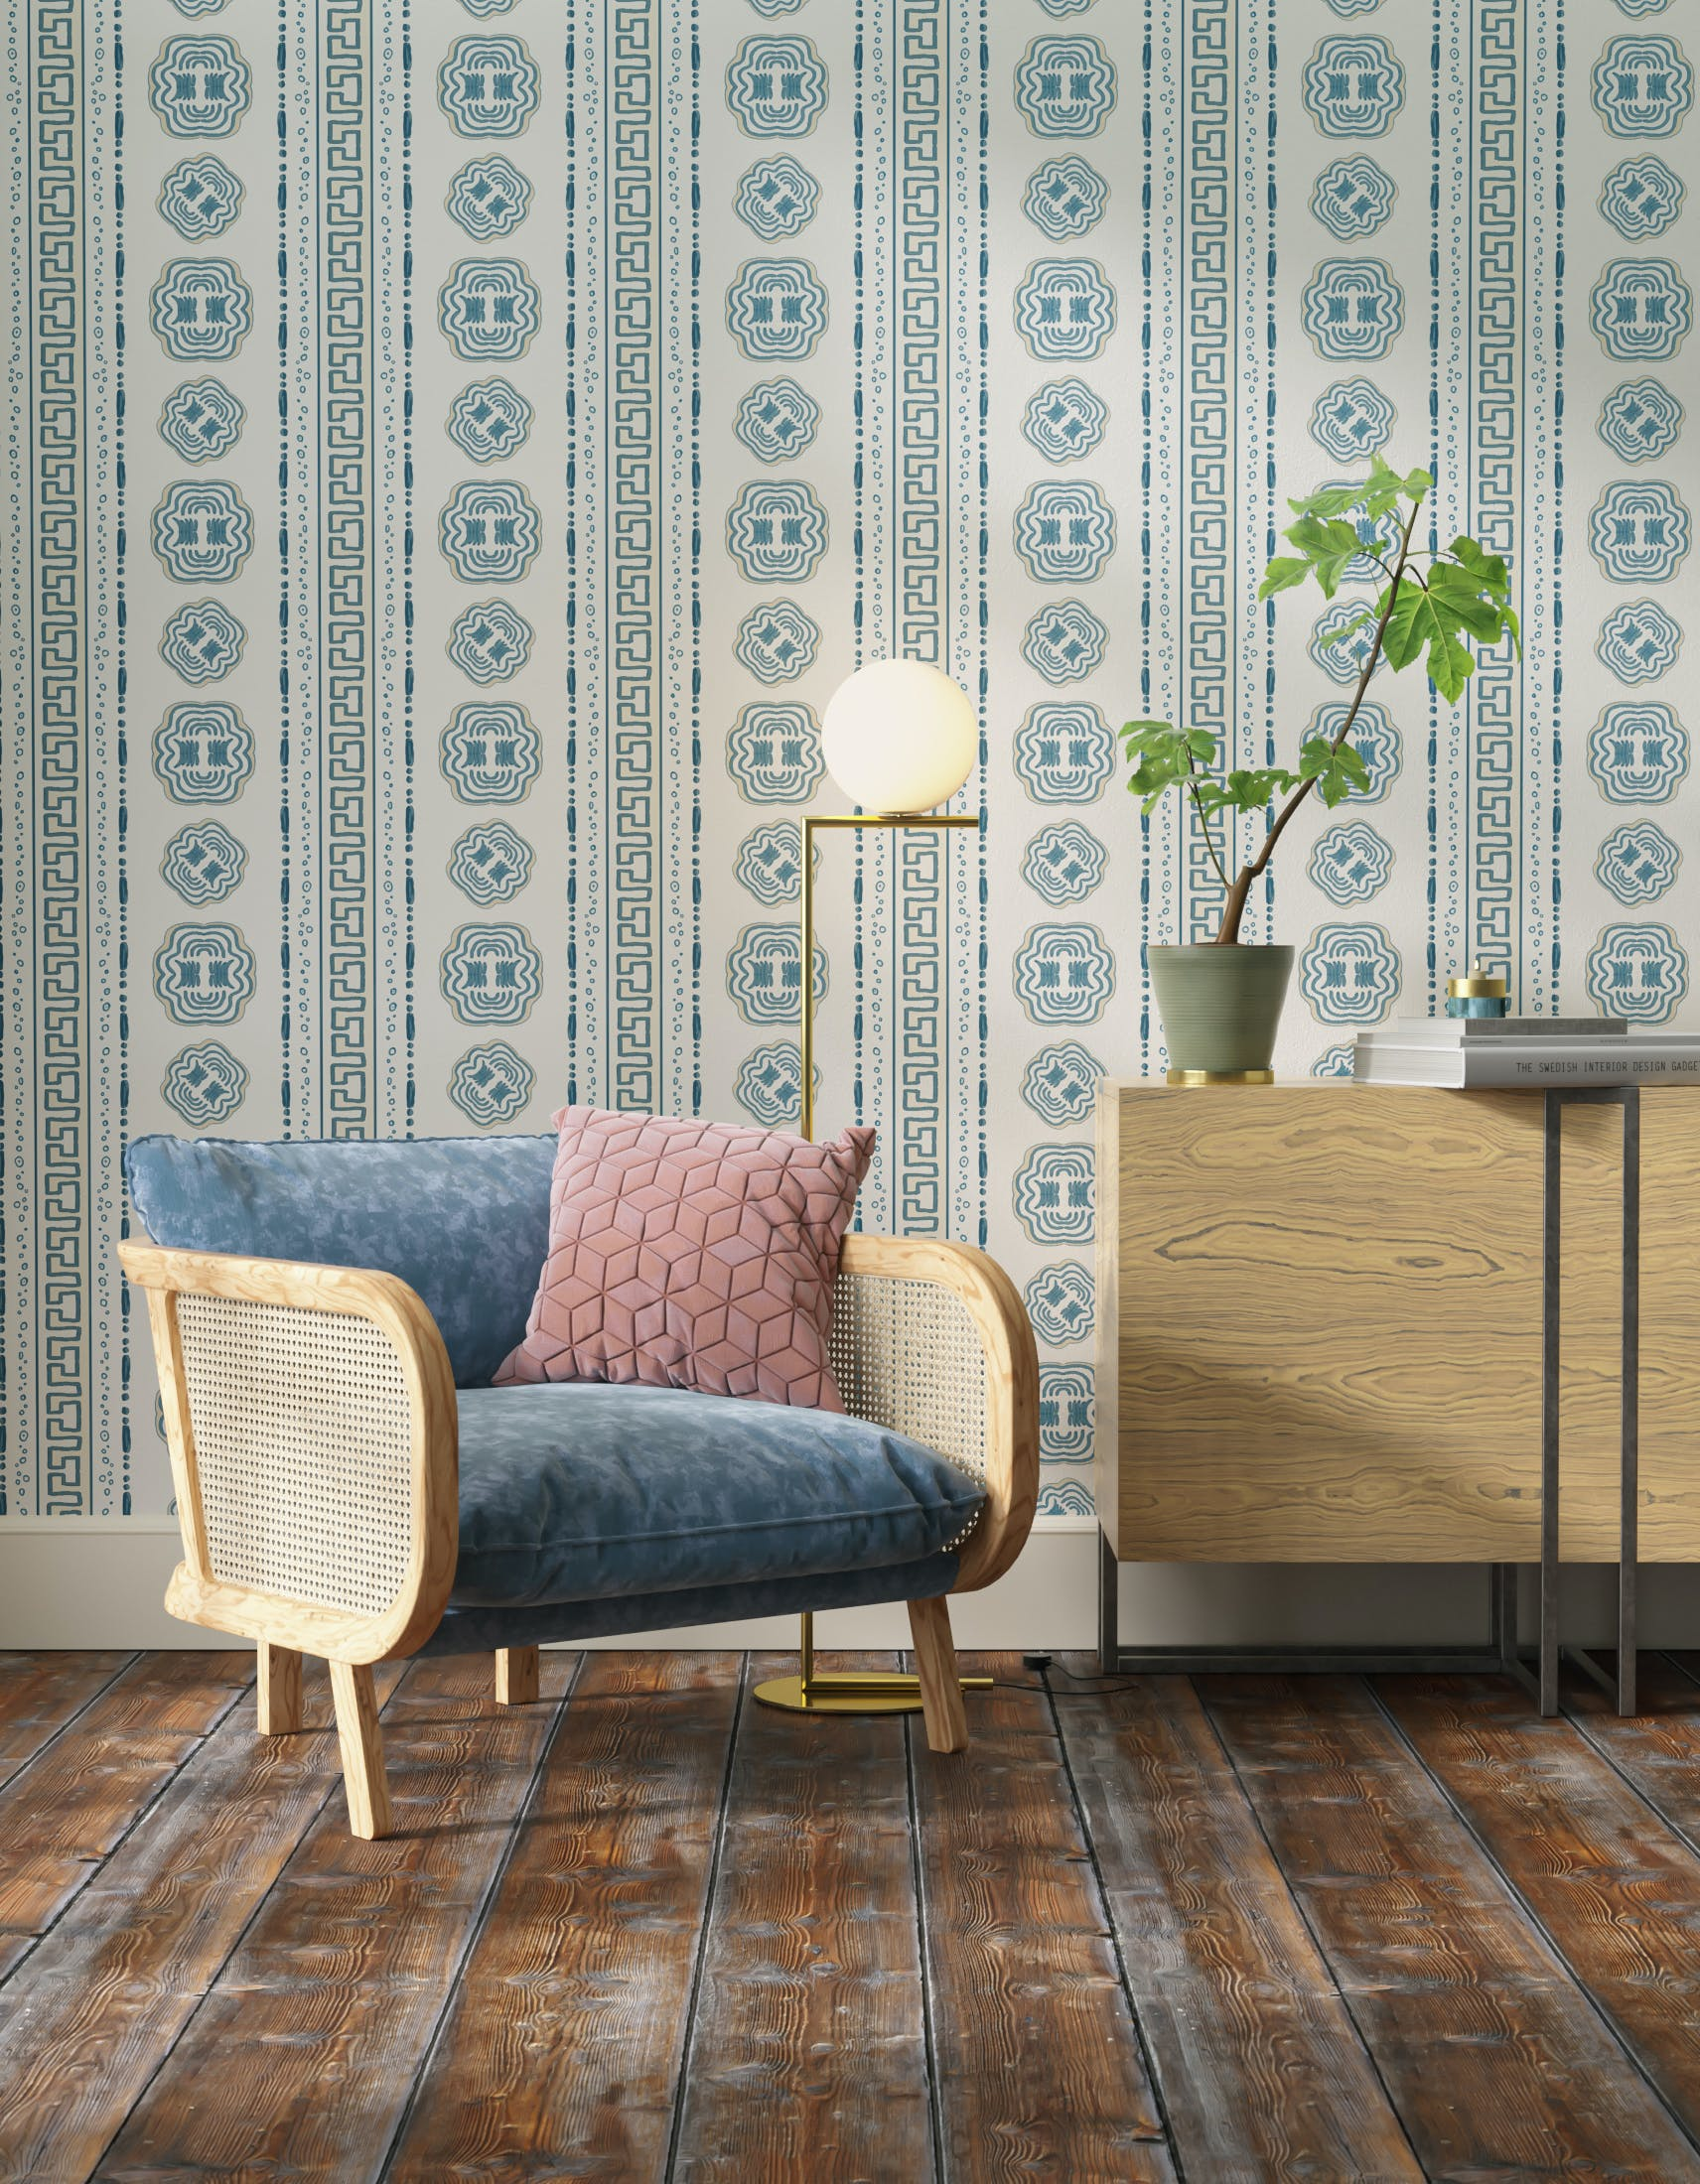 Living room decorated with Lick x Lottie McDowell Hestia 01 greek patterened wallpaper